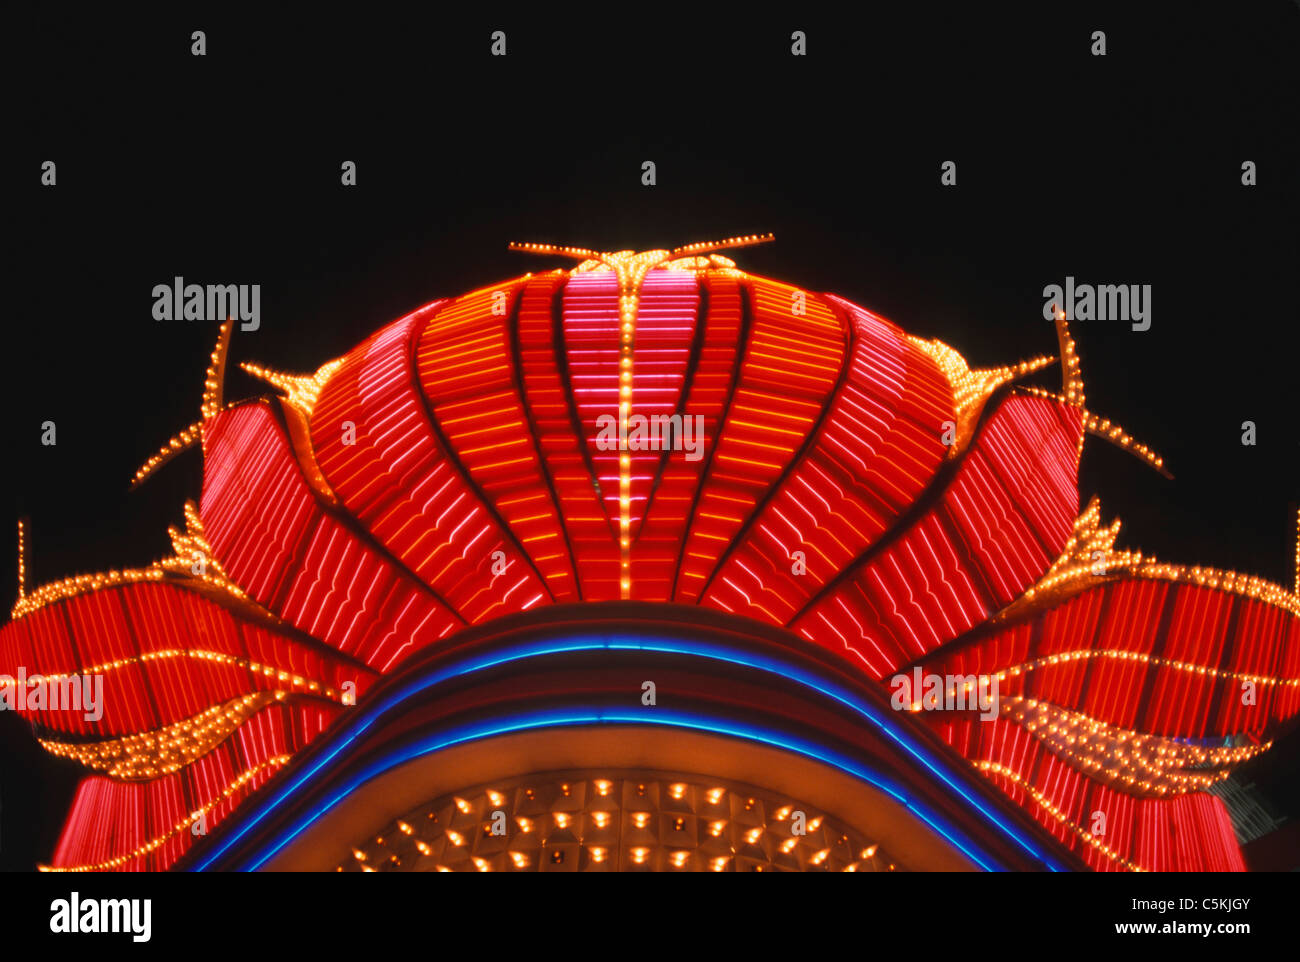 Casino light sign, Las Vegas, NV - Stock Image